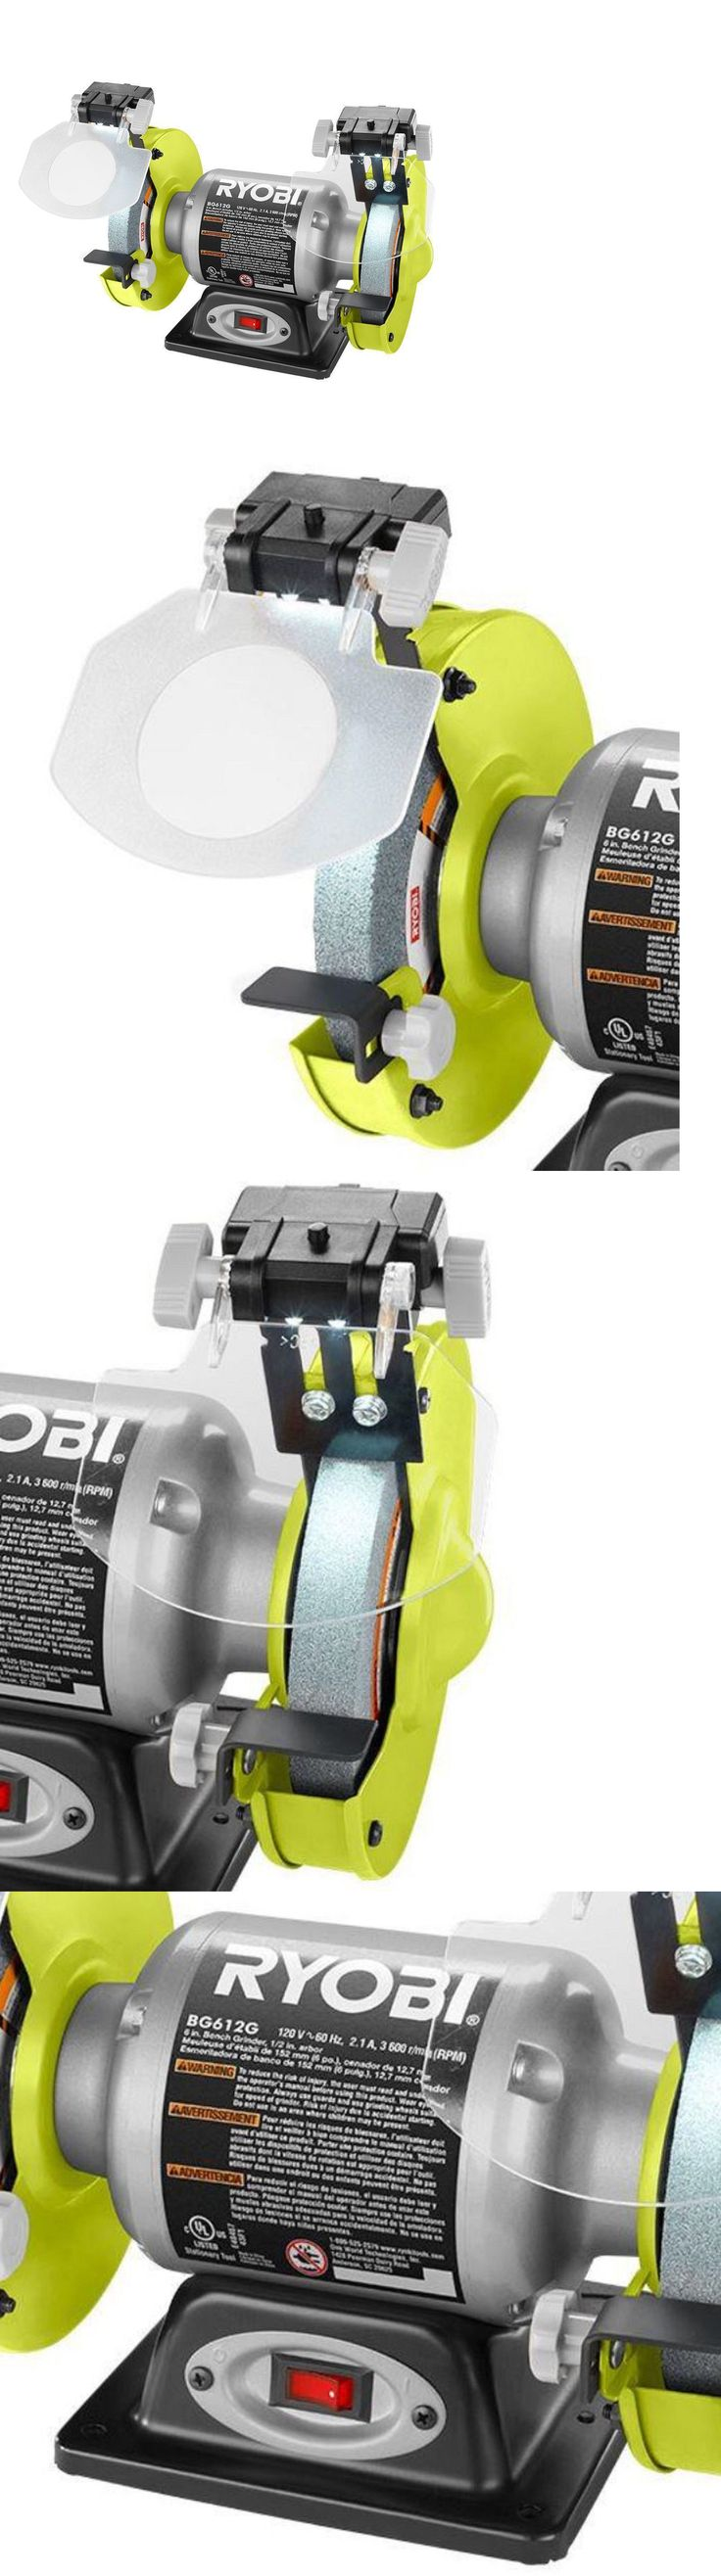 Bench Grinders 42277: Ryobi 2.1-Amp 6 In. Bench Grinder With Led Lights Heavy Gauge Steel Power Tool -> BUY IT NOW ONLY: $59.79 on eBay!